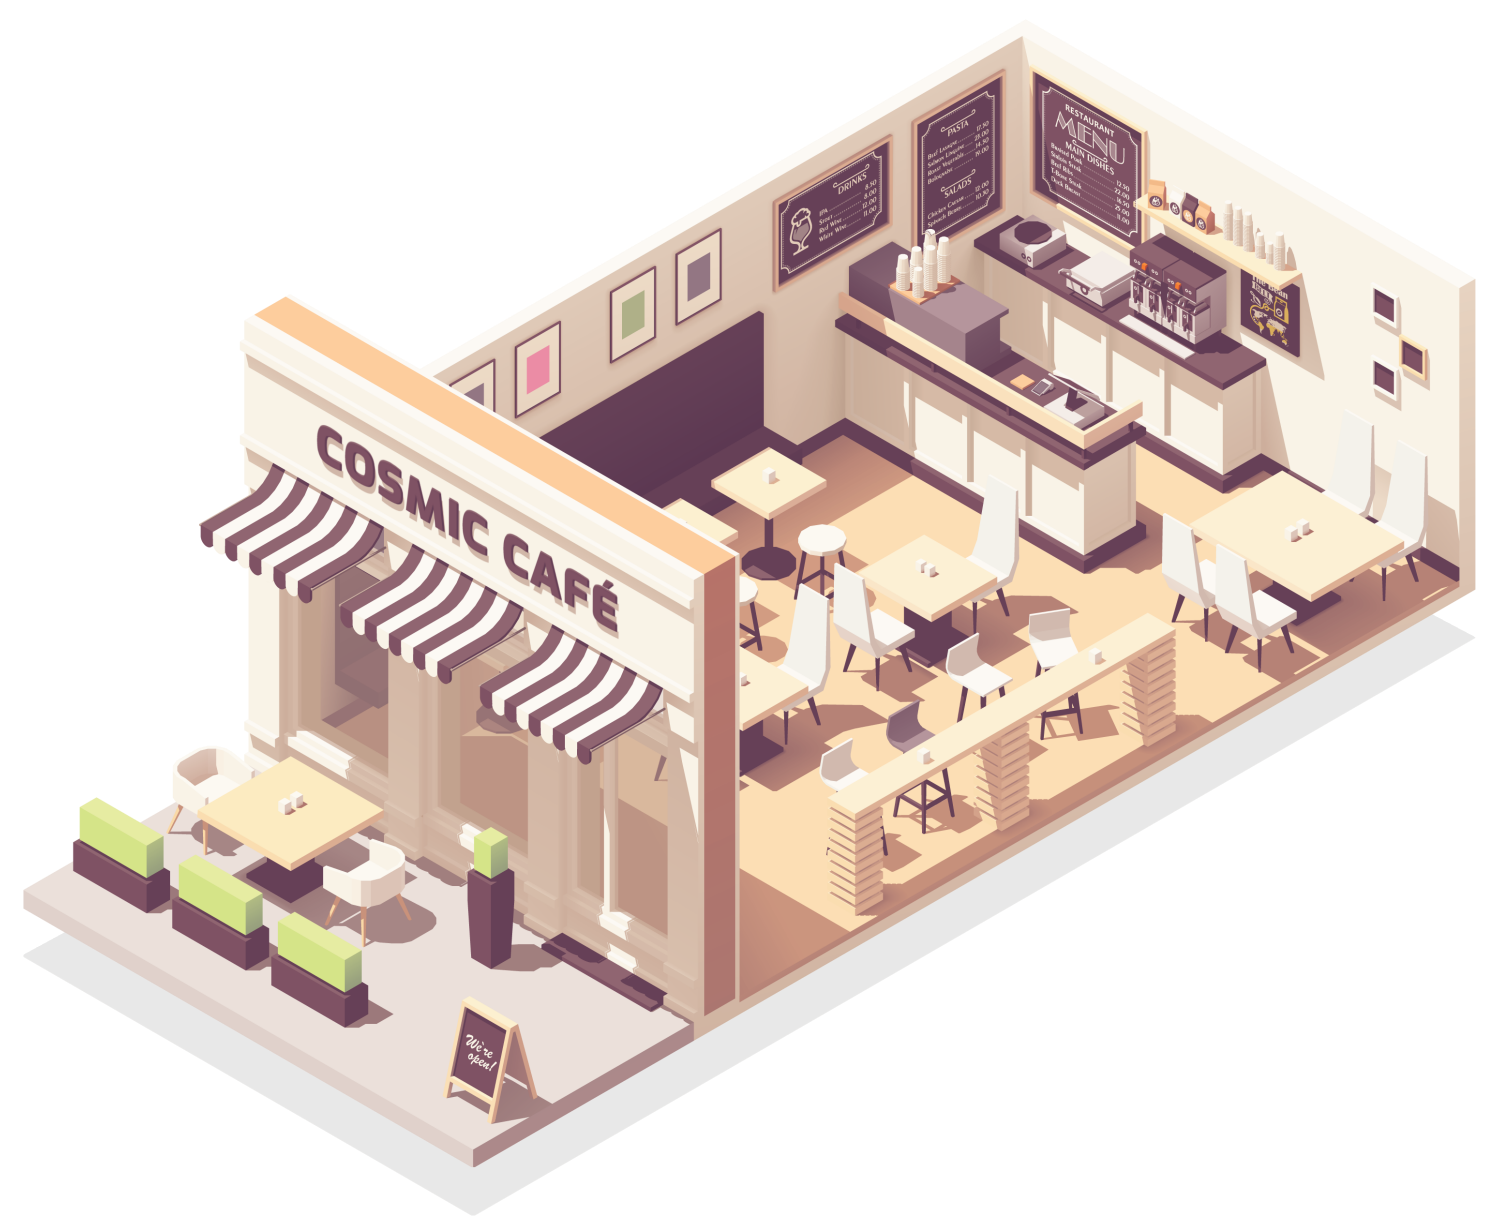 isometric cutaway illustration of a café where Cosmic Cleaning Bristol might provide contract cleaning services